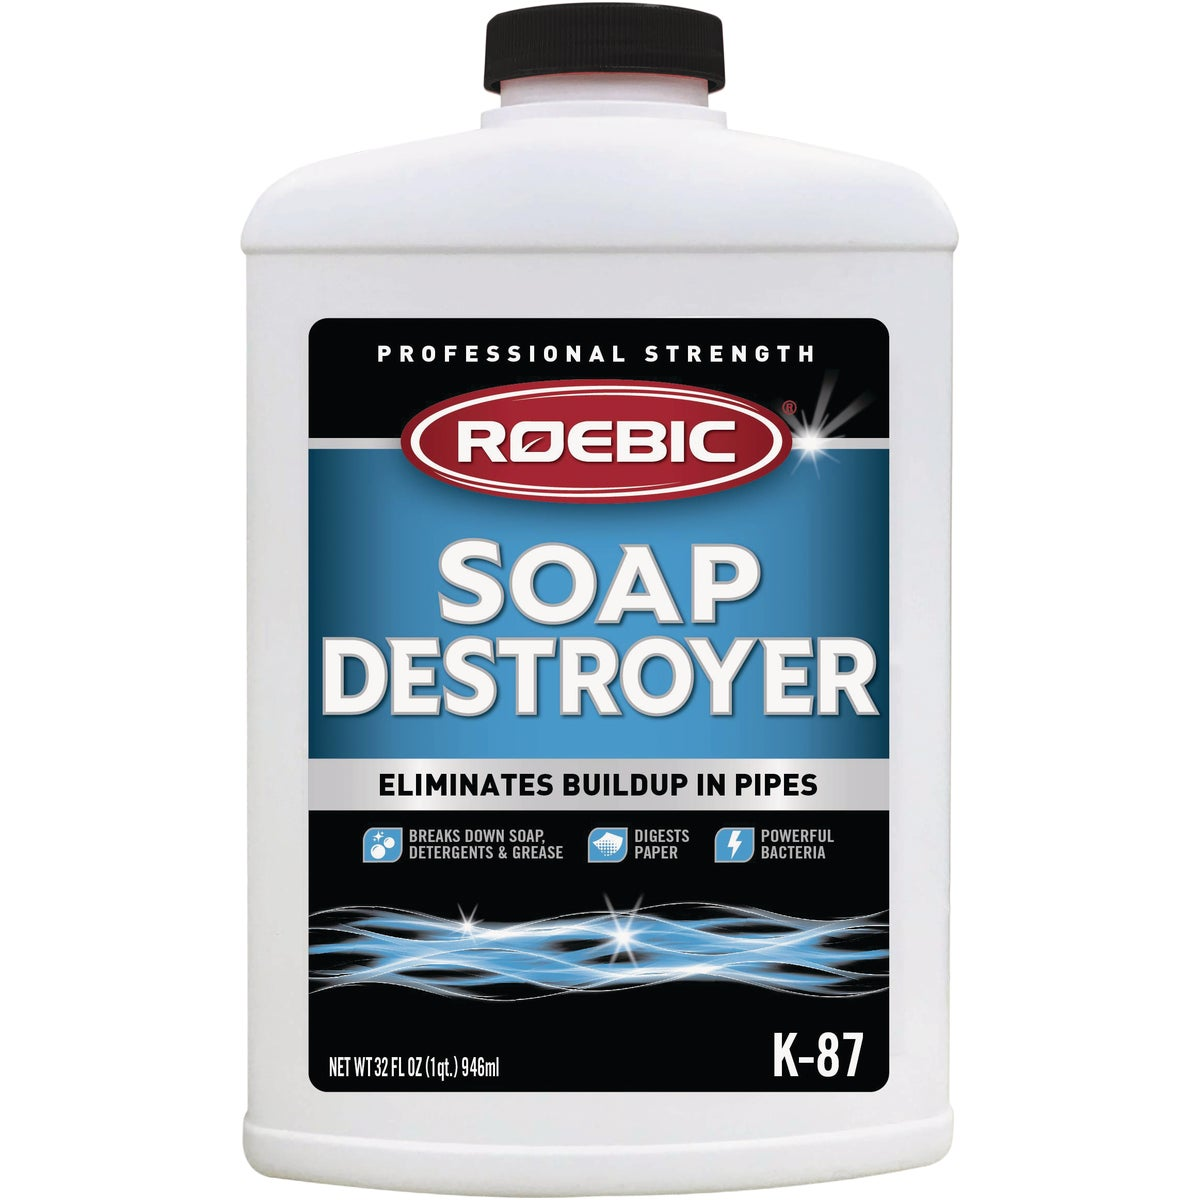 SOAP/GREAS/PAPR DIGESTER